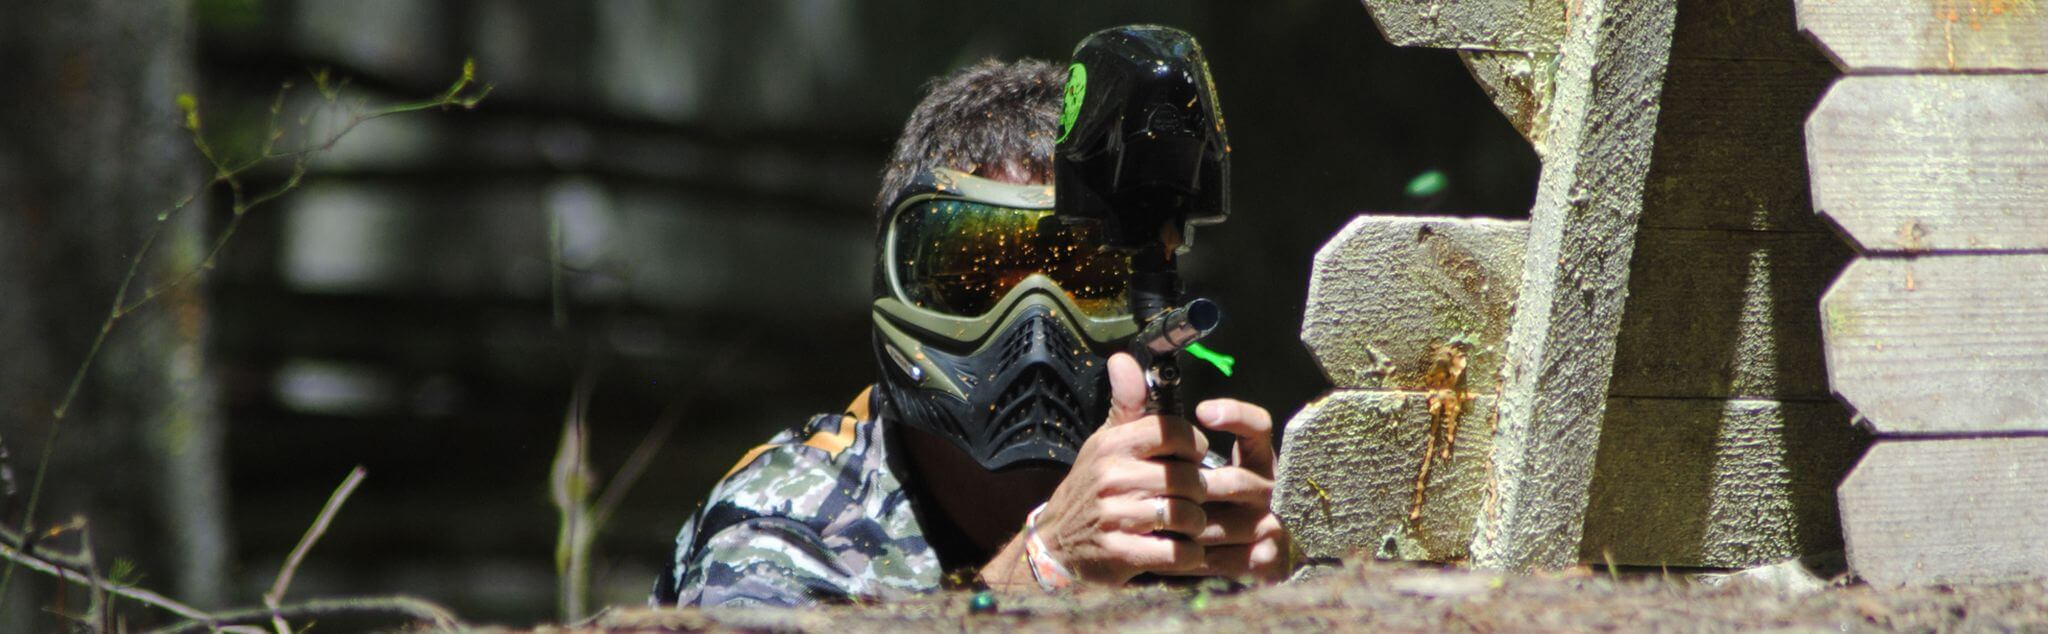 Paintball en Torrelavega